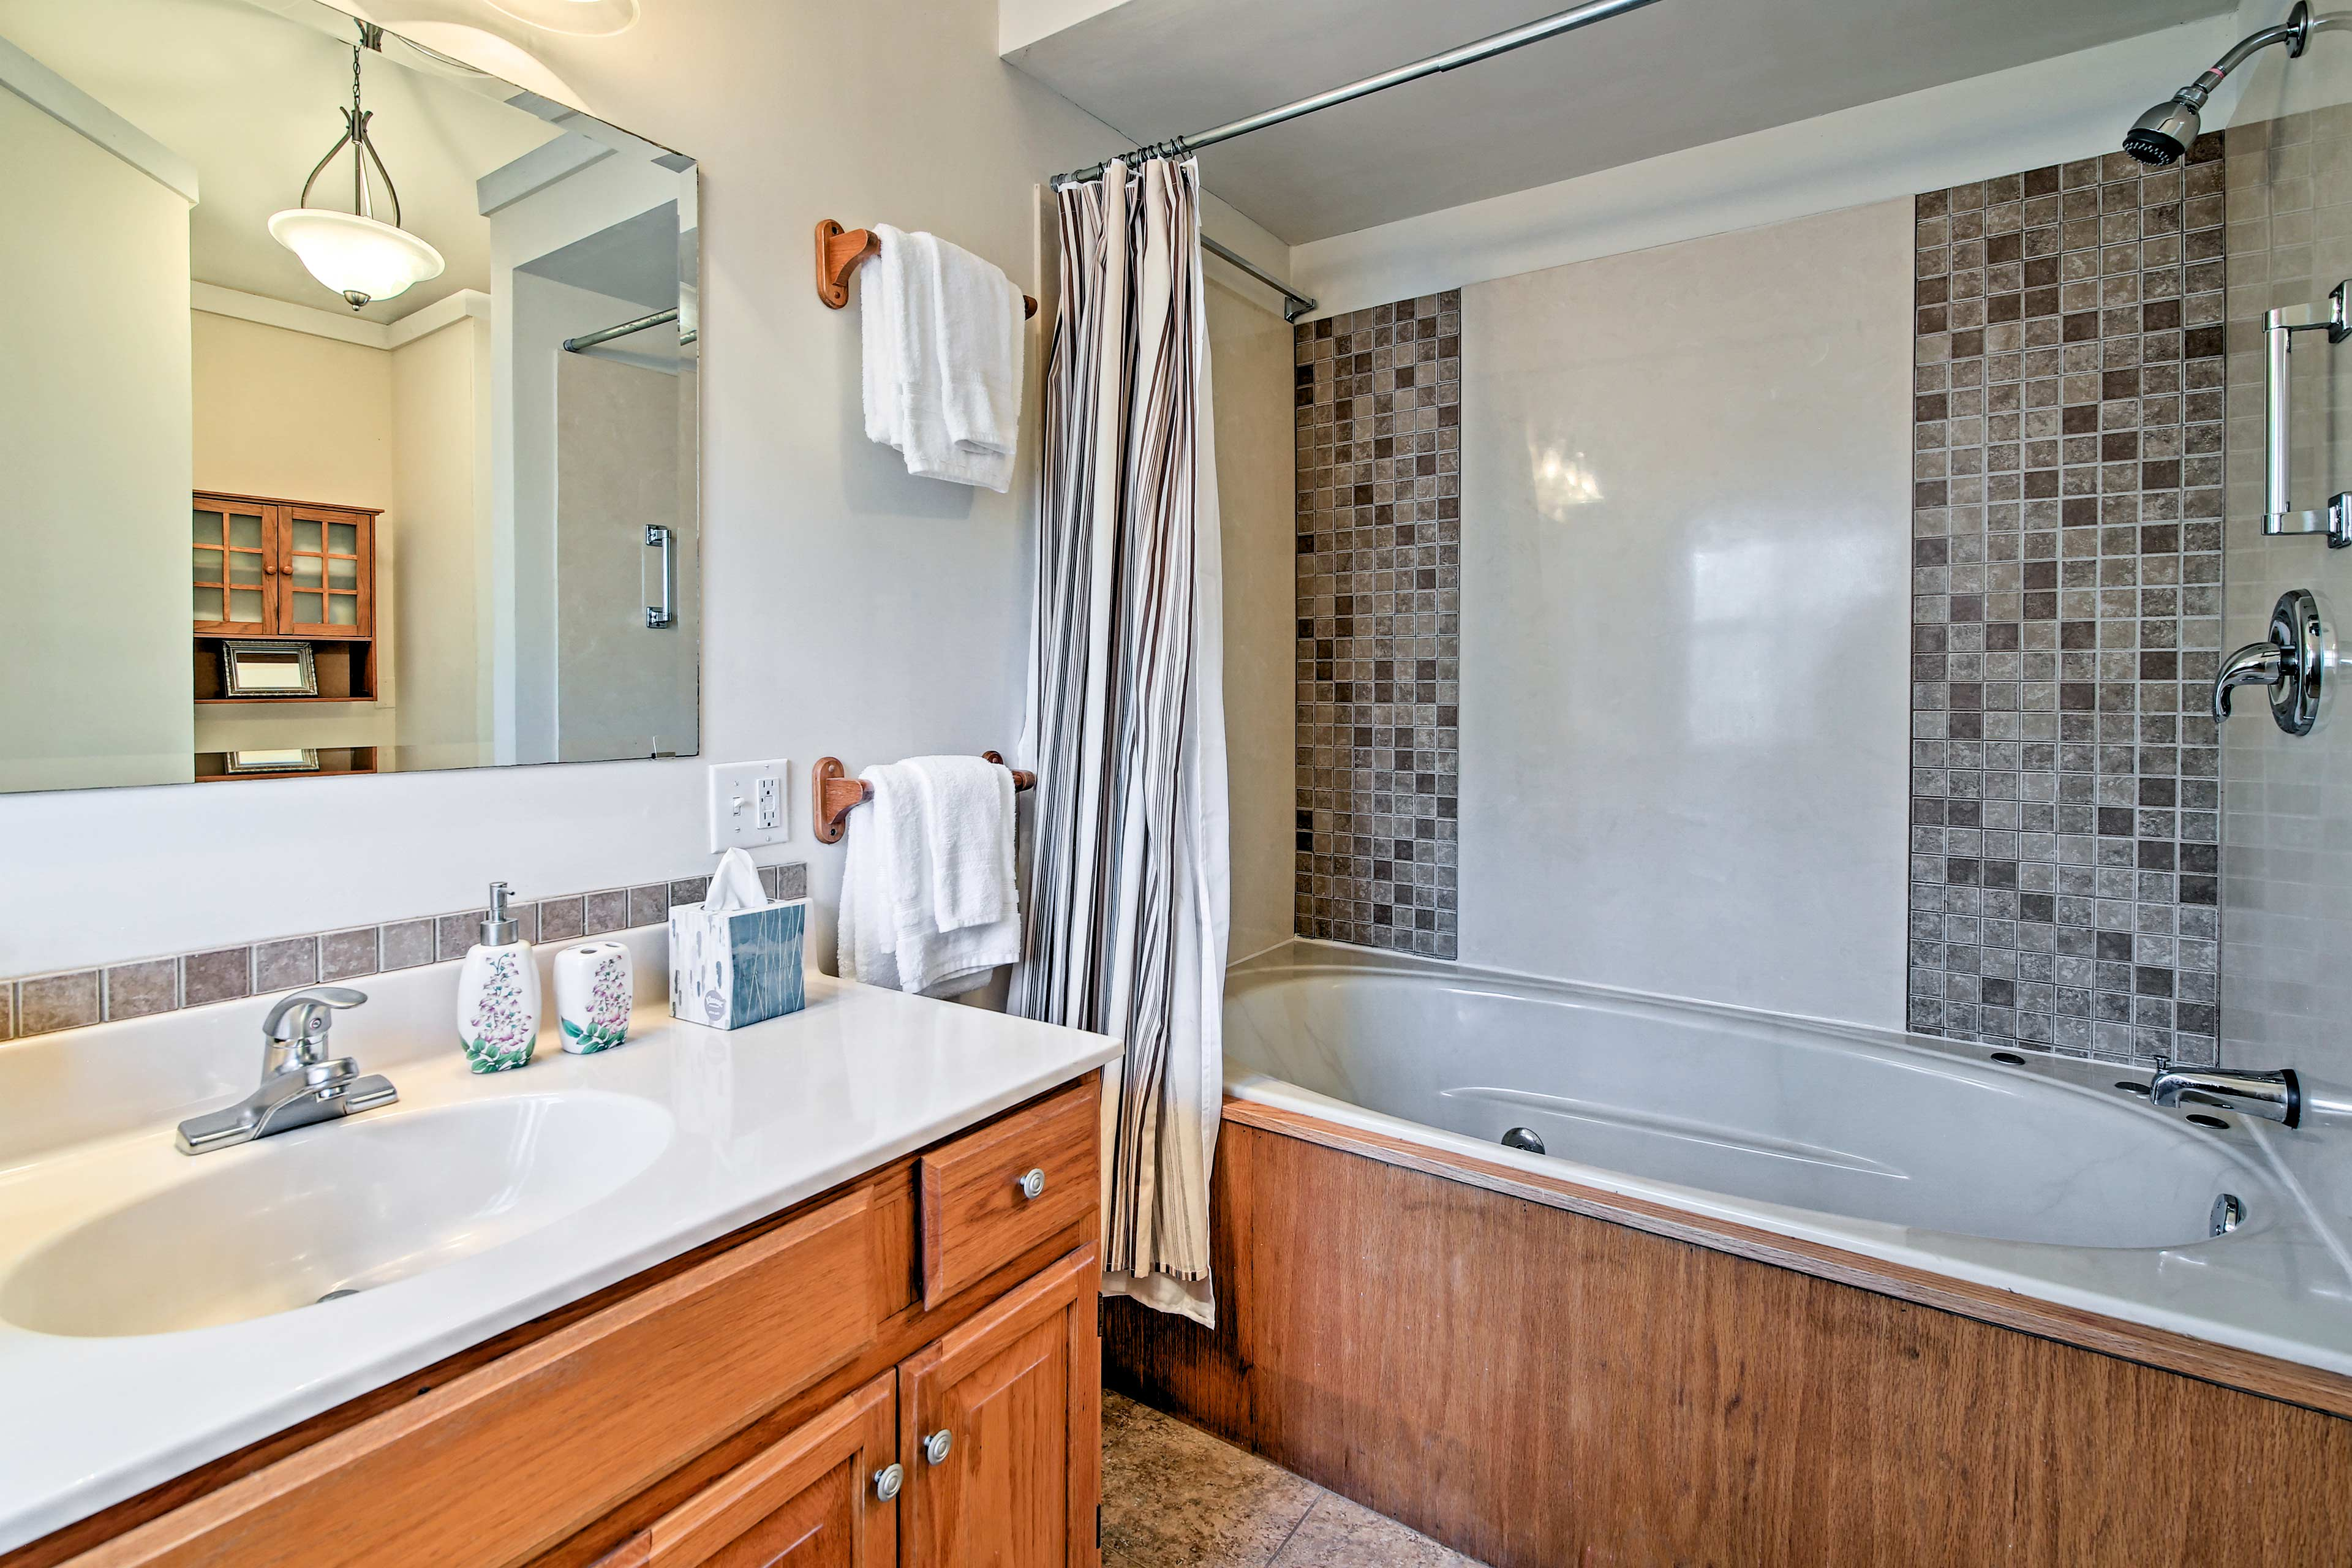 Take a hot shower in the full bathroom after a fun-filled day hiking.